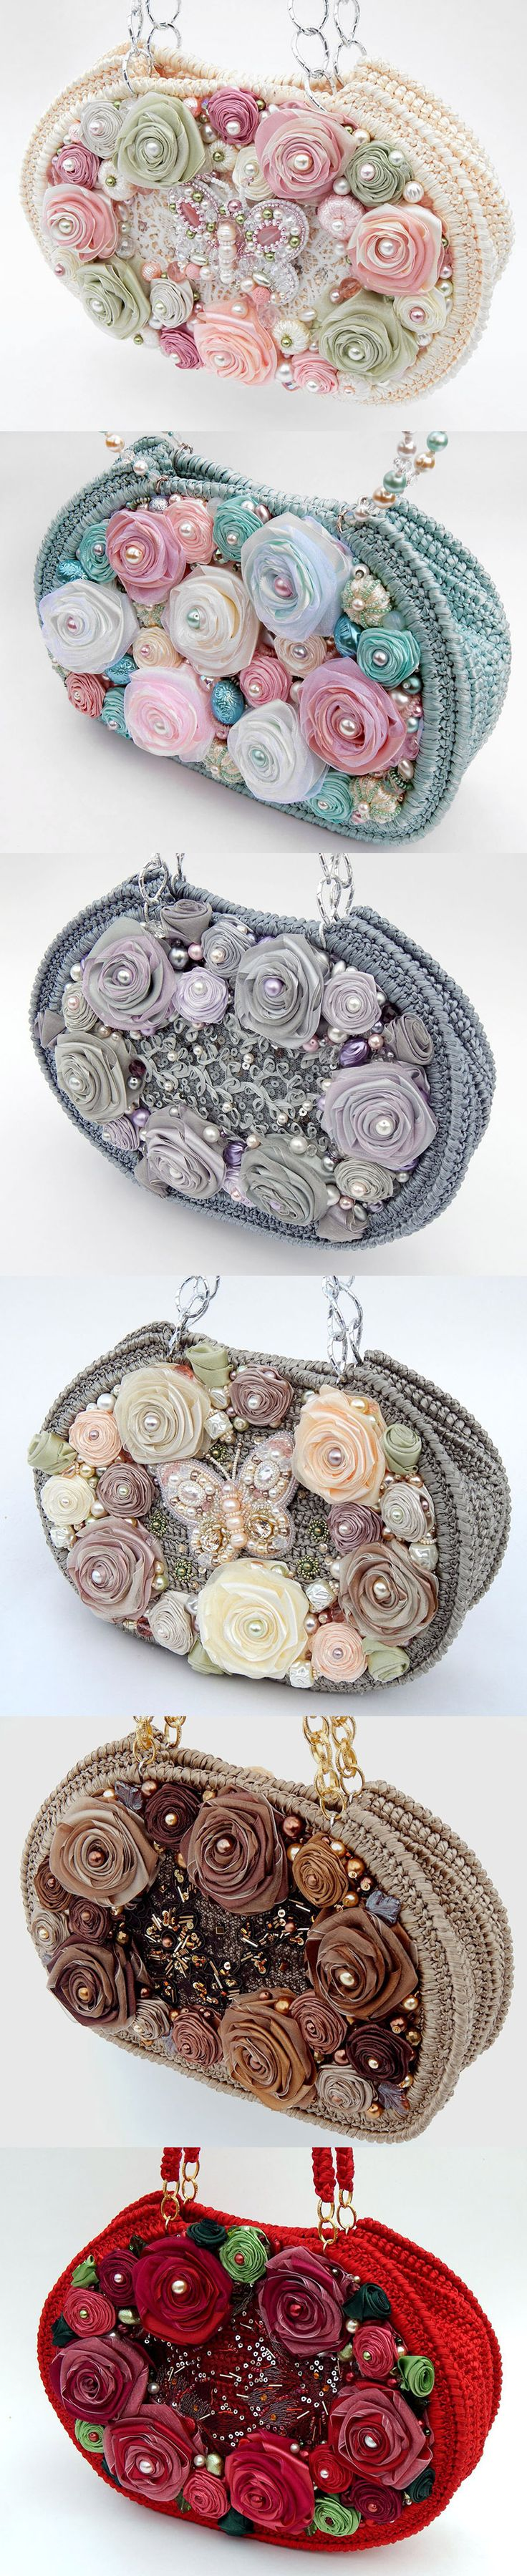 Delightful purses with hand embroidery by Irina Shoubina